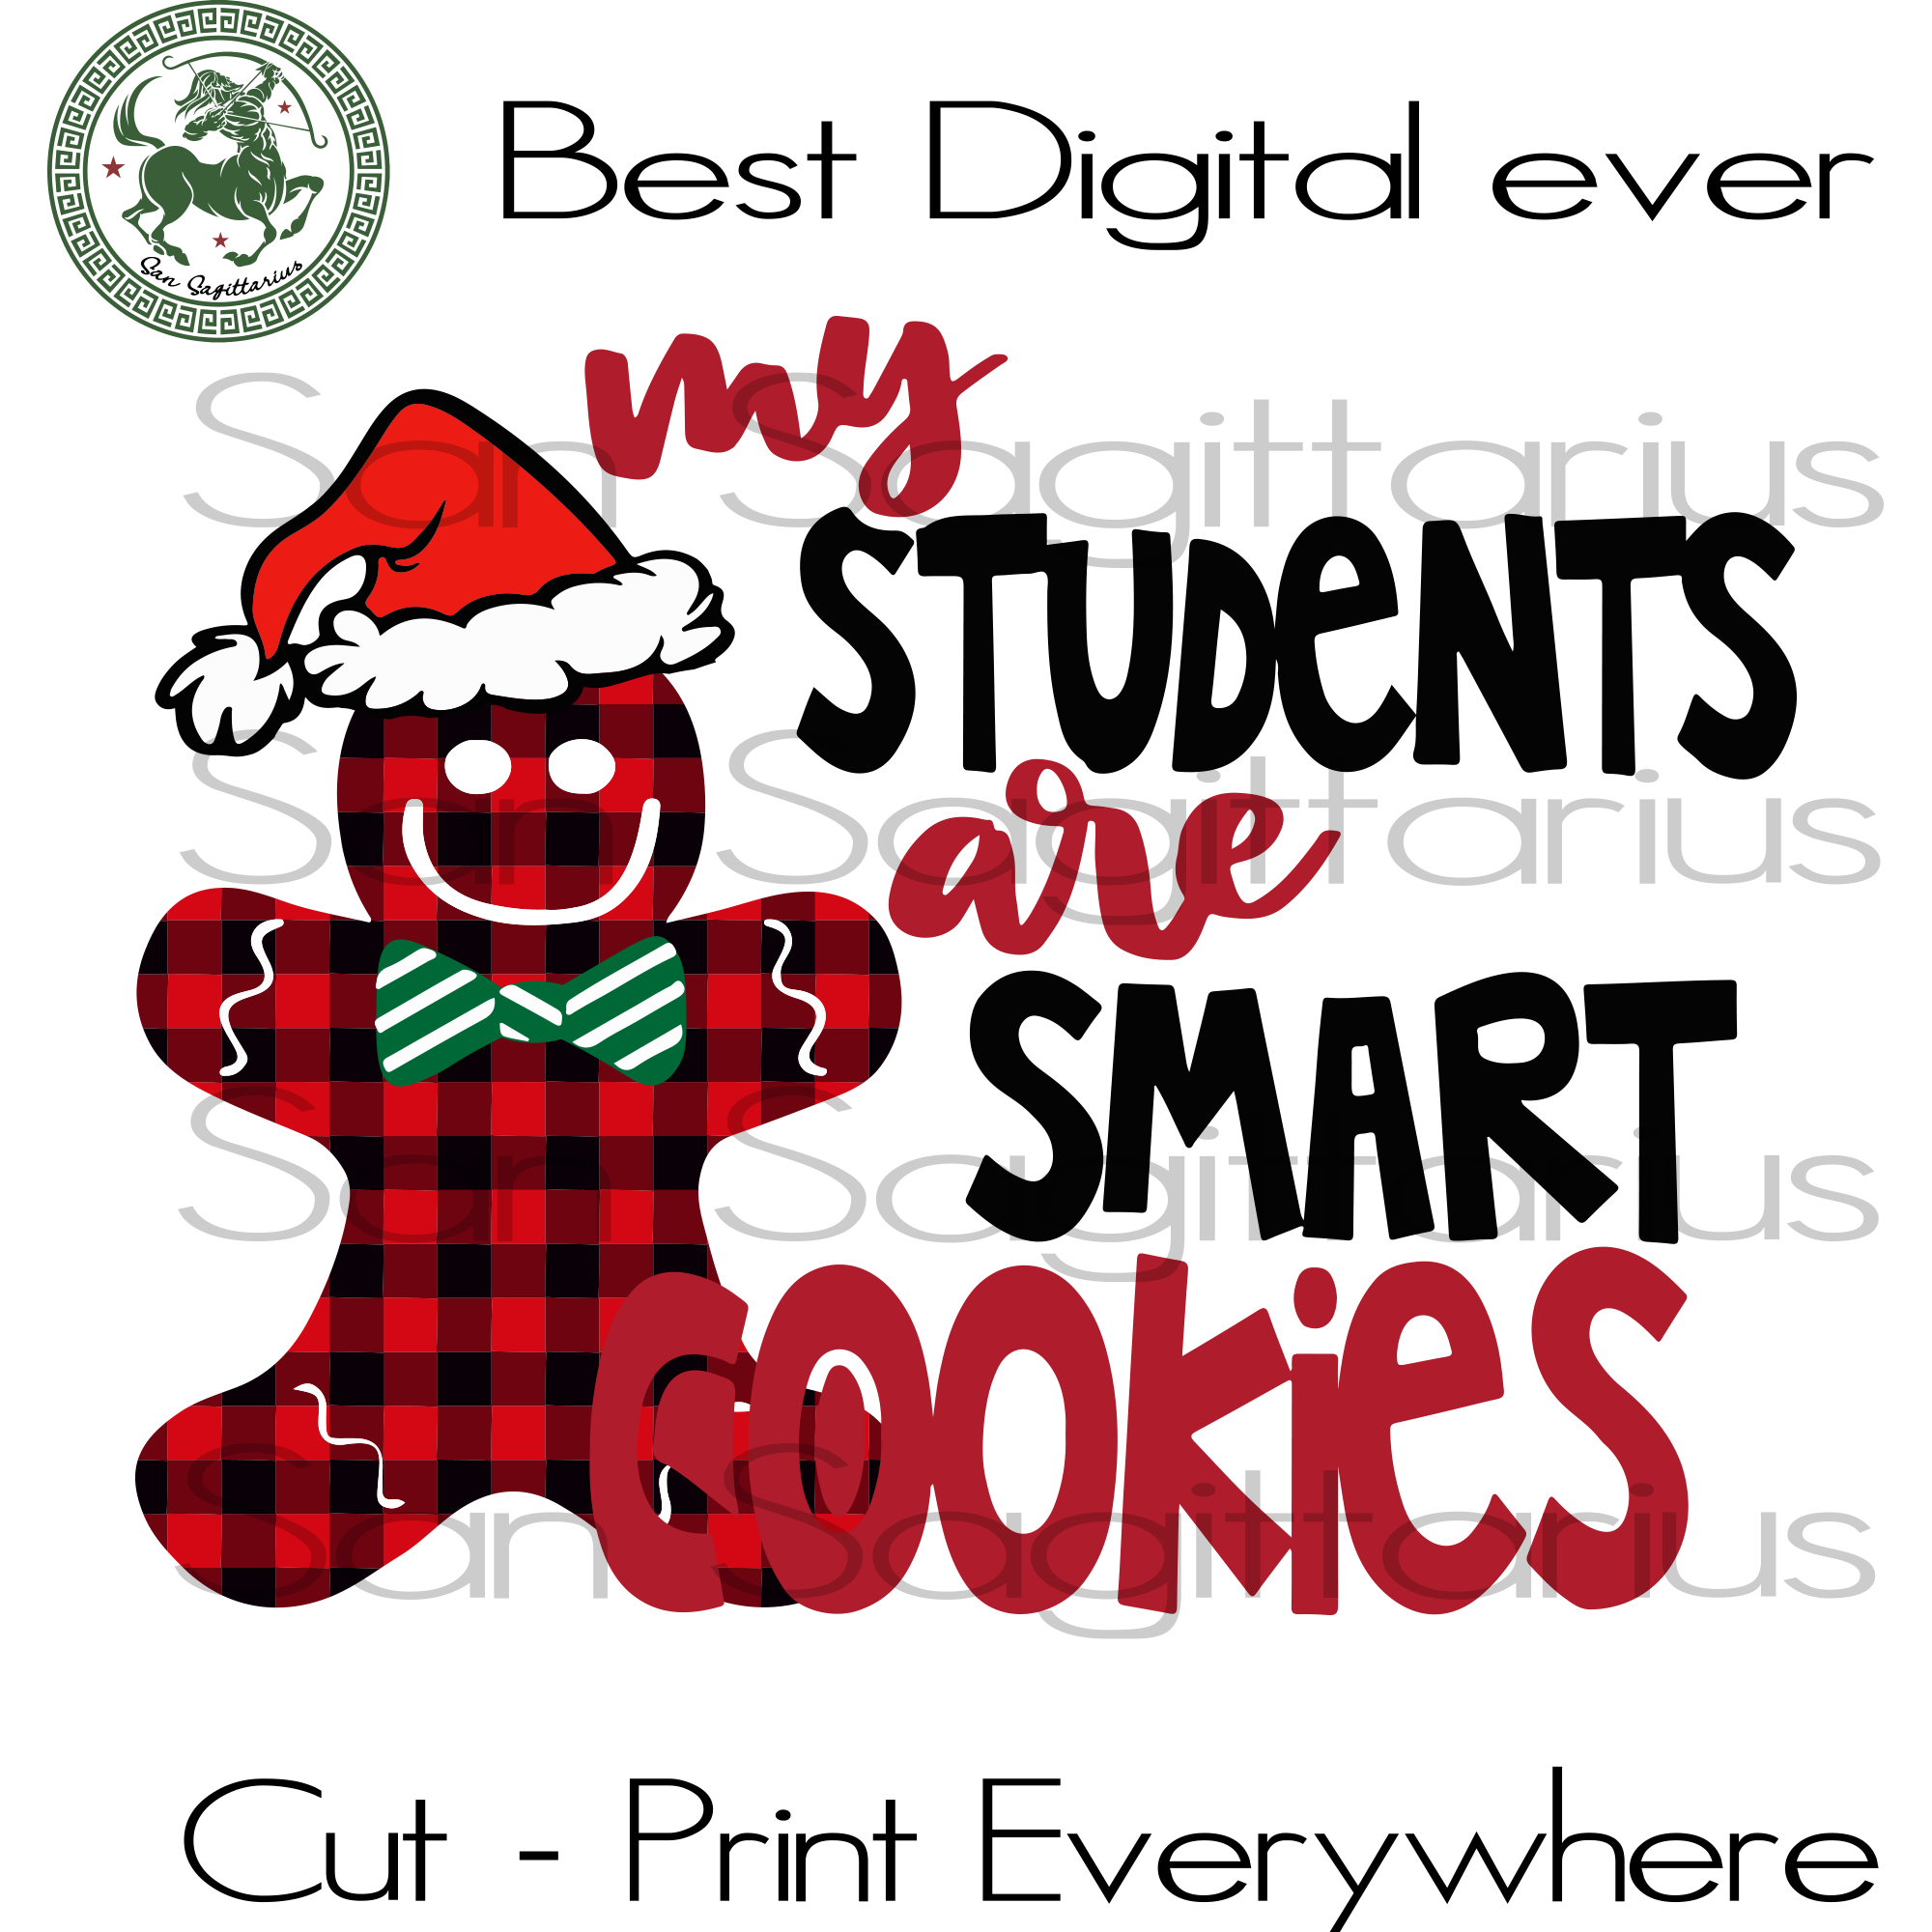 My Student Are Smart Cookies, Christmas Svg, Bear Christmas, Christmas Gifts, Merry Christmas, Christmas Holiday, Christmas Party, Funny Christmas, Xmas Gift, Christmas Gift Ideas, Merry Chri